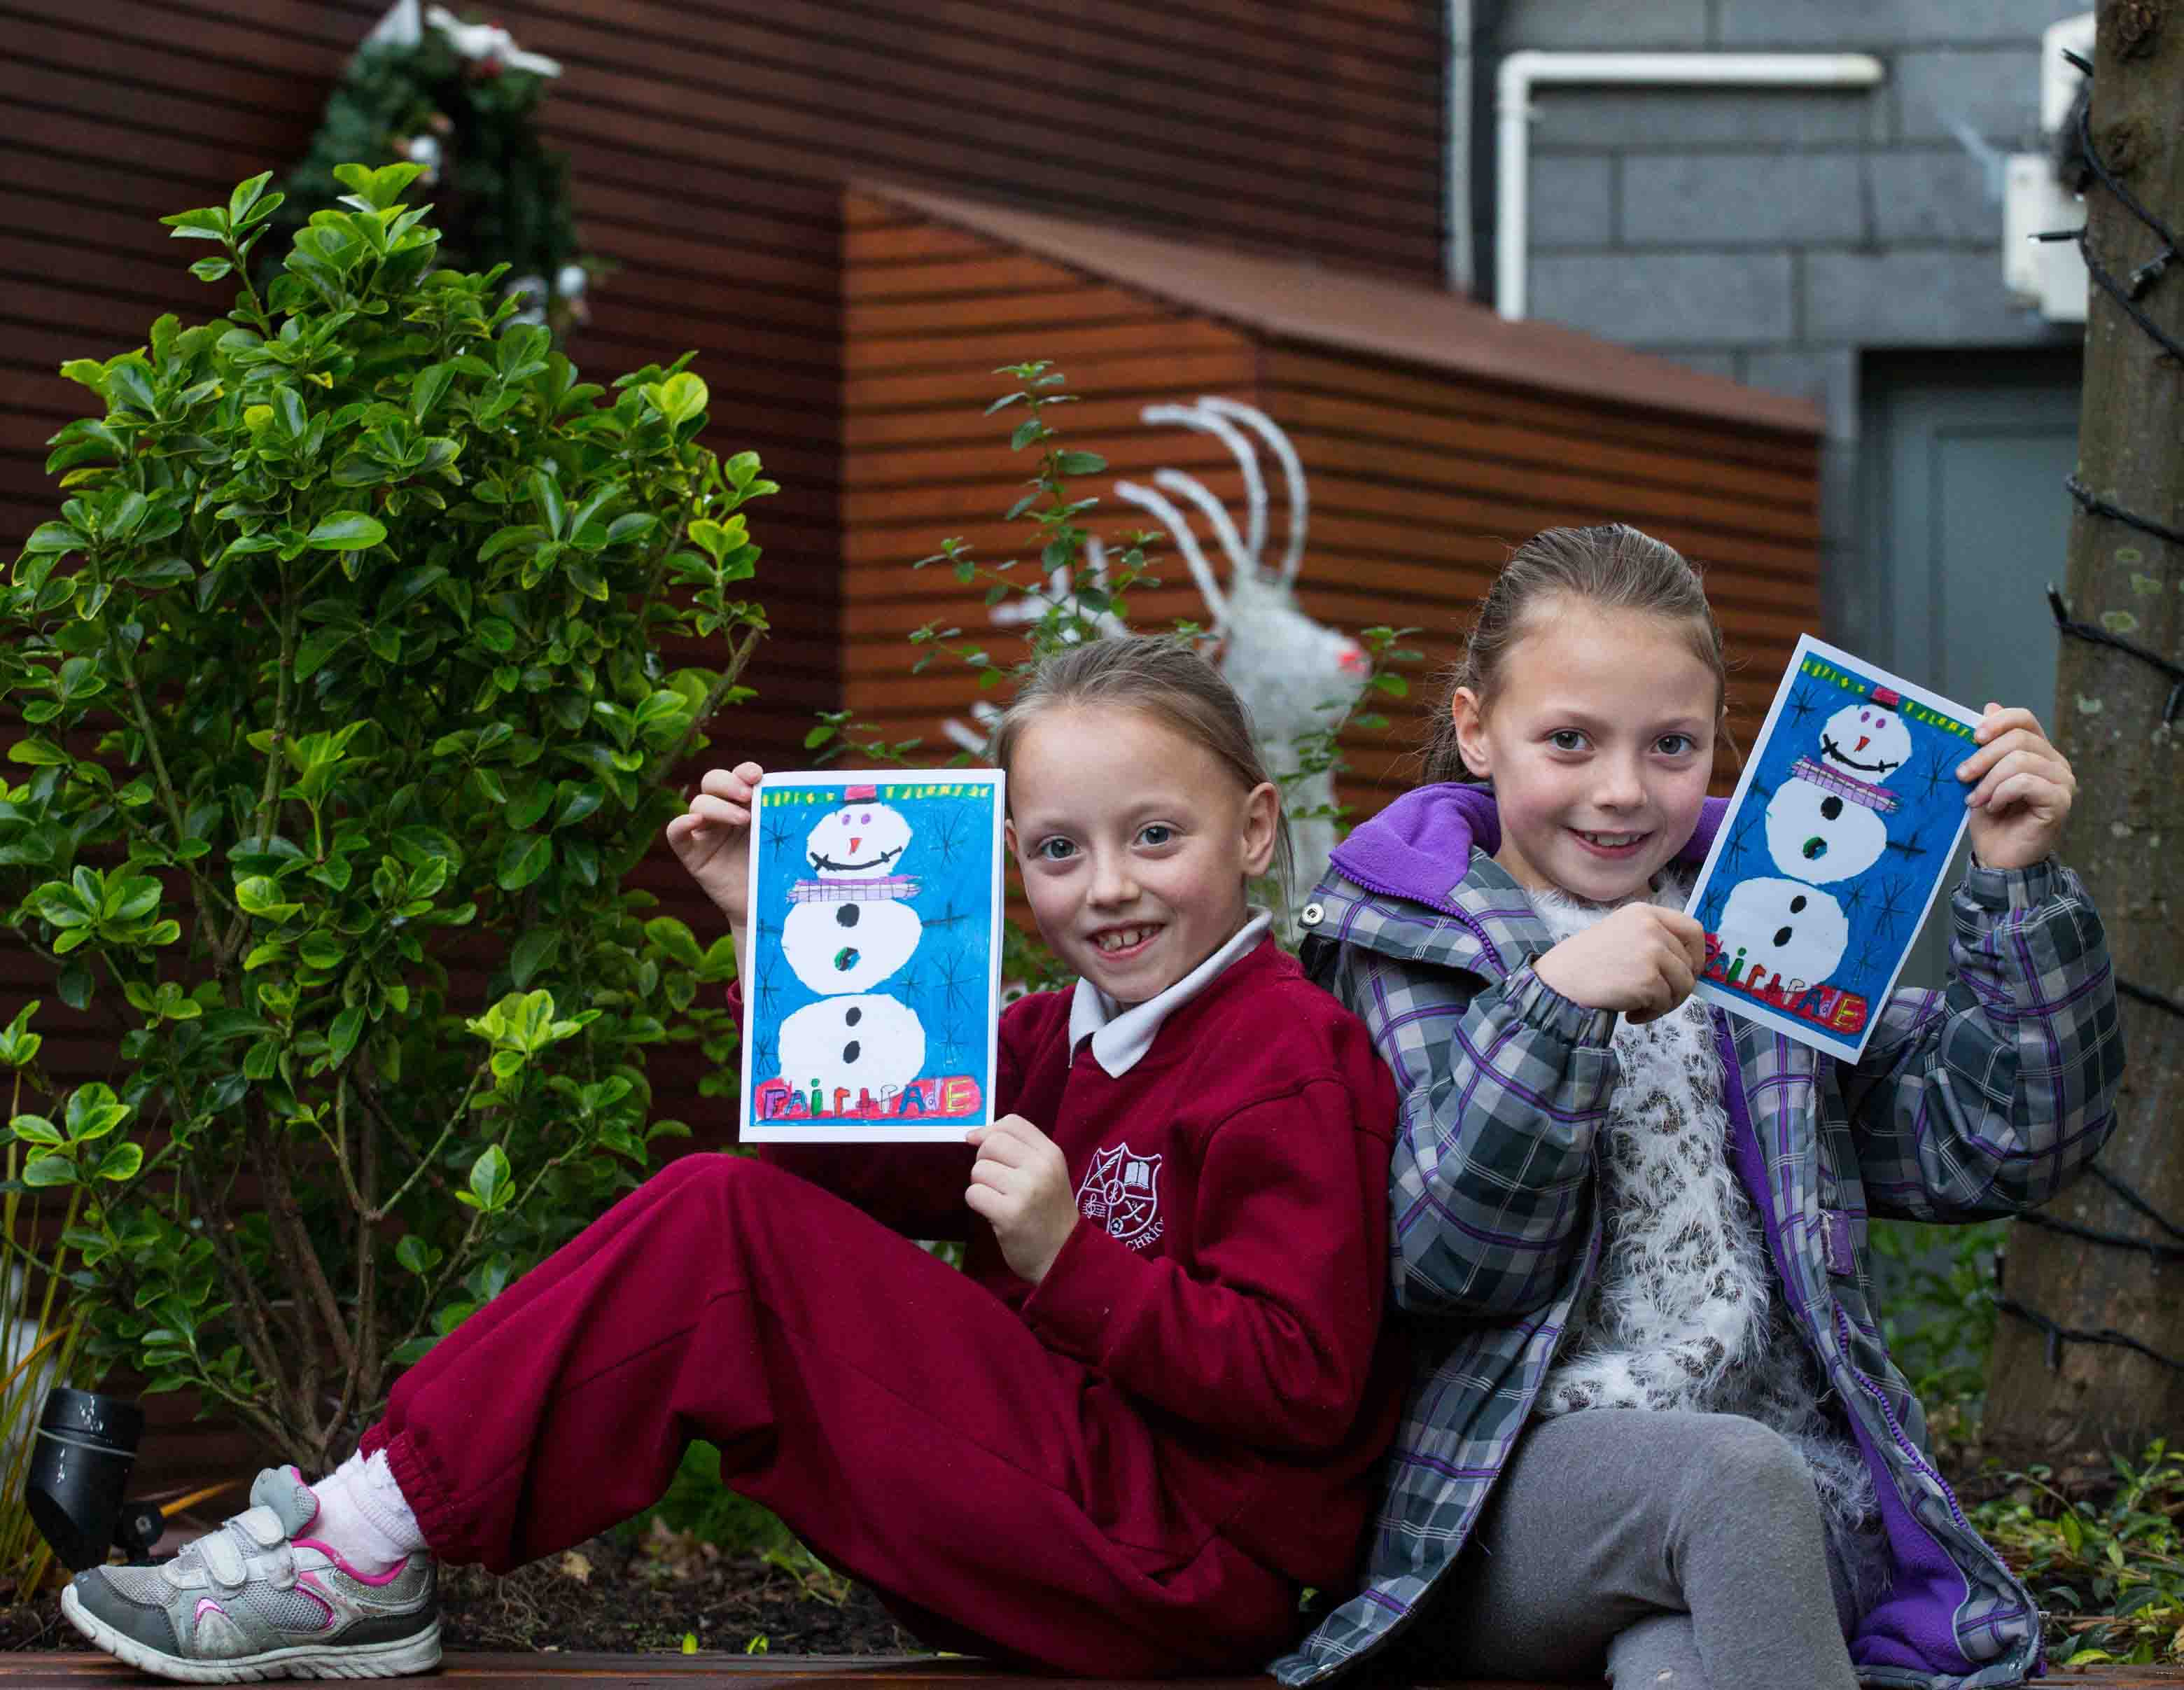 Limerick Fairtrade Christmas Card Competition winners announced